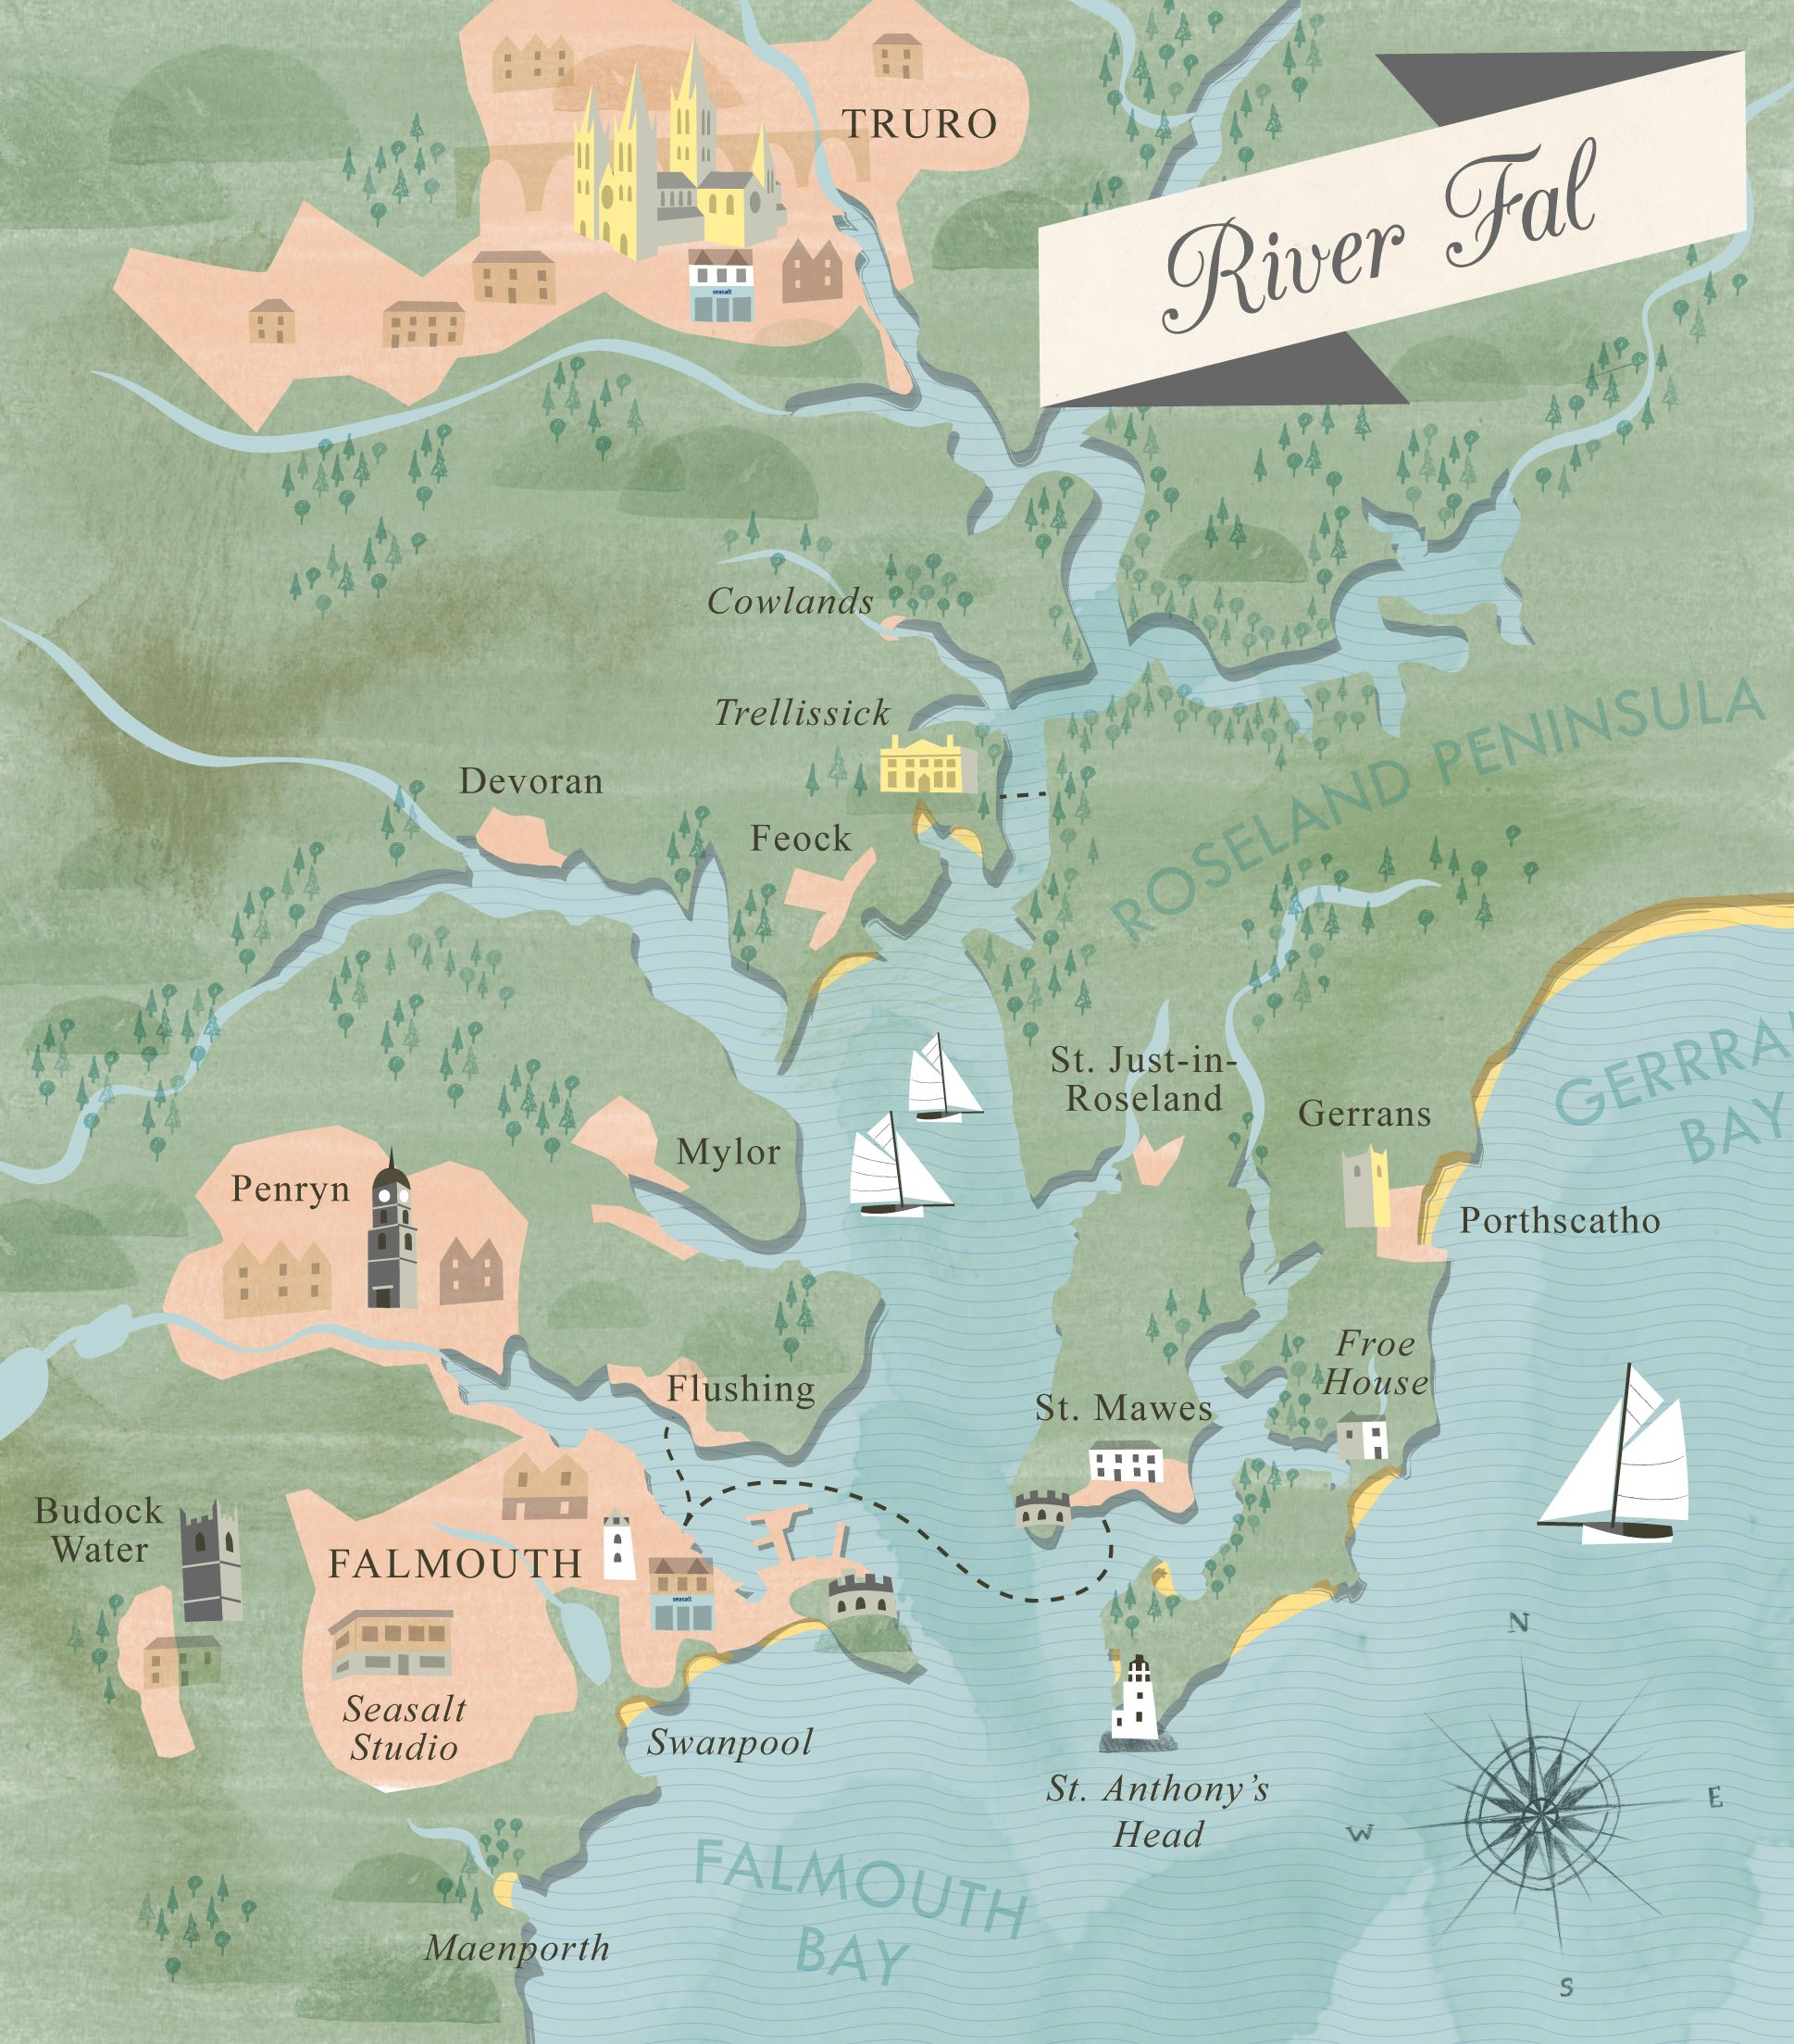 Illustrated map of River Fal showing Falmouth Truro Carrick Roads